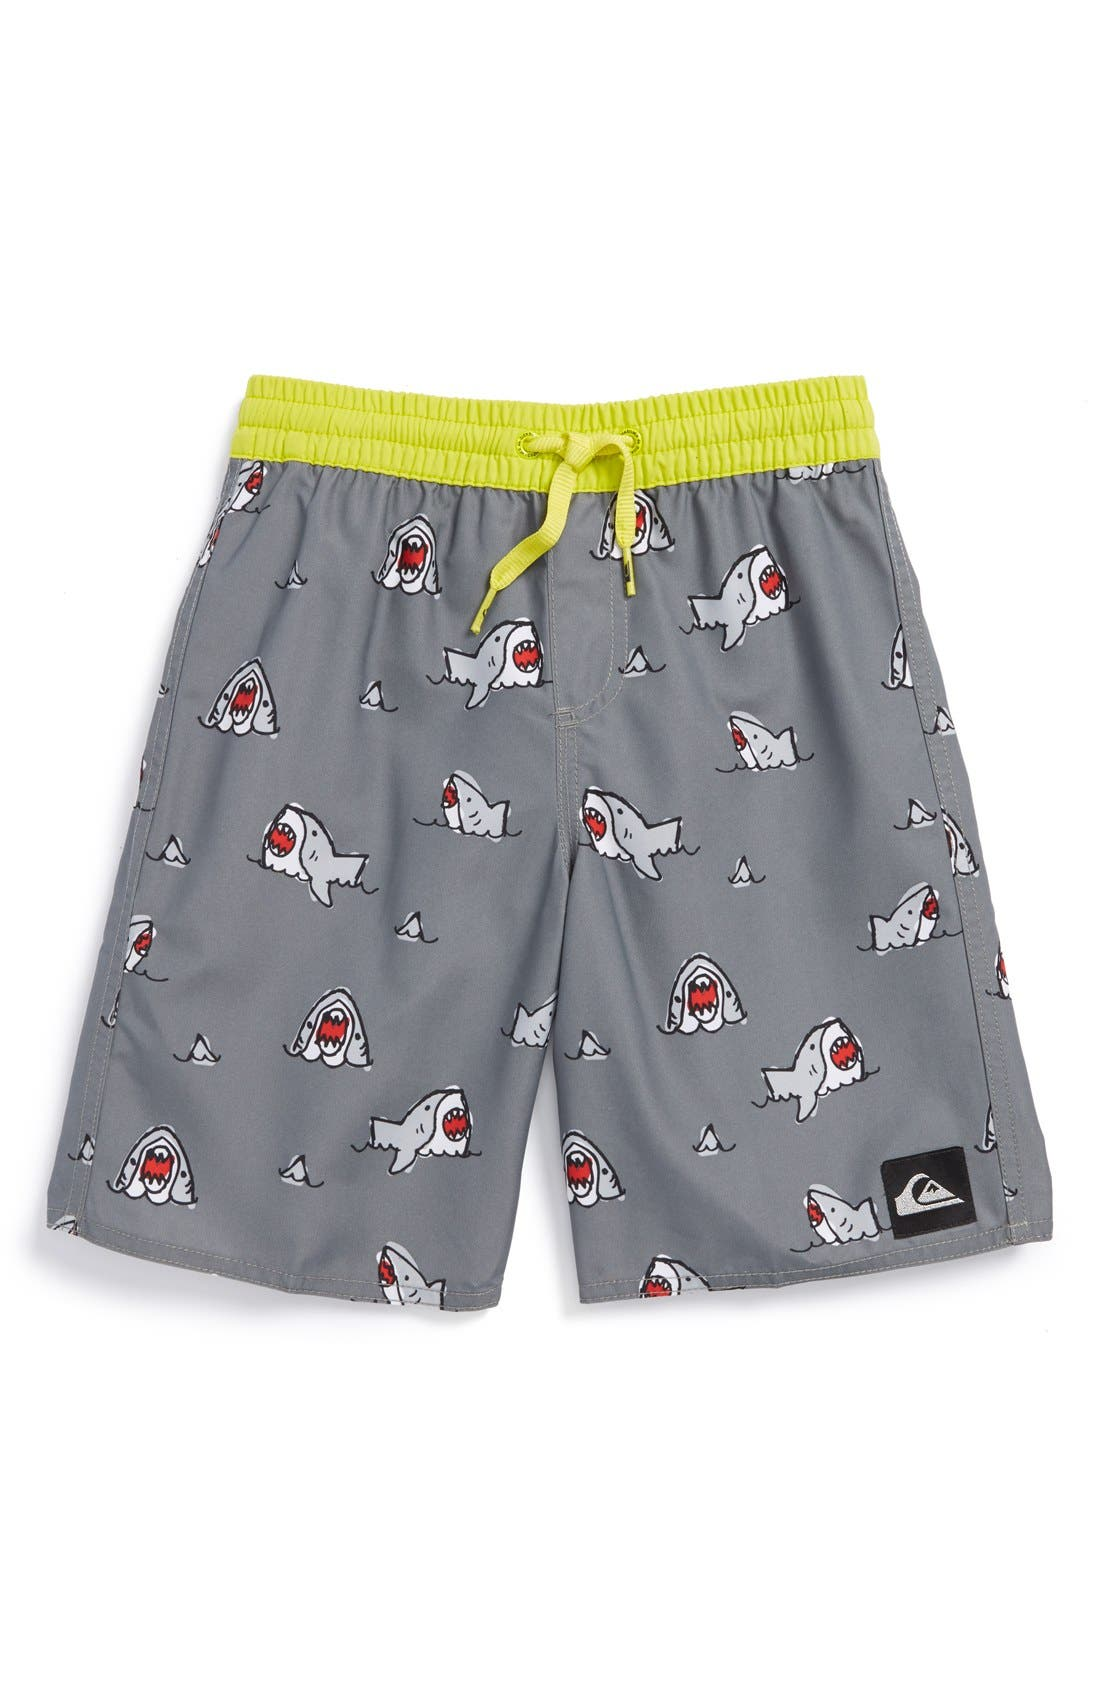 Main Image - Quiksilver 'Sharkbait' Volley Shorts (Little Boys)